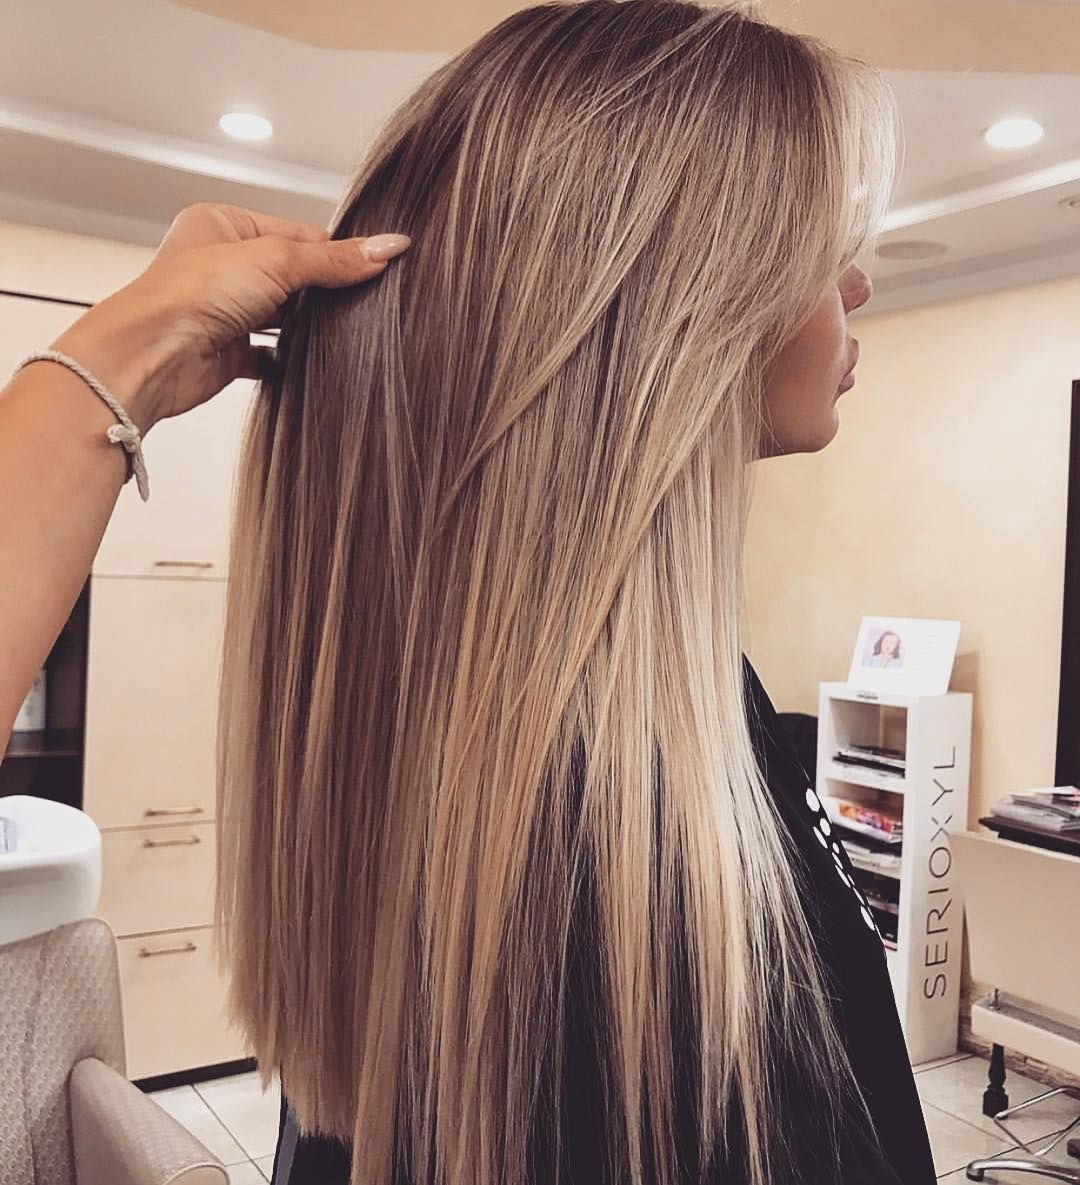 """Hello Hair Natural Haircare ™ on Instagram: """"That super sleek mane though! Doesn't this one via @oksana_lioda just look so flawless? 🙌  #HelloHair products can help you achieve your…"""" – balayage hair"""